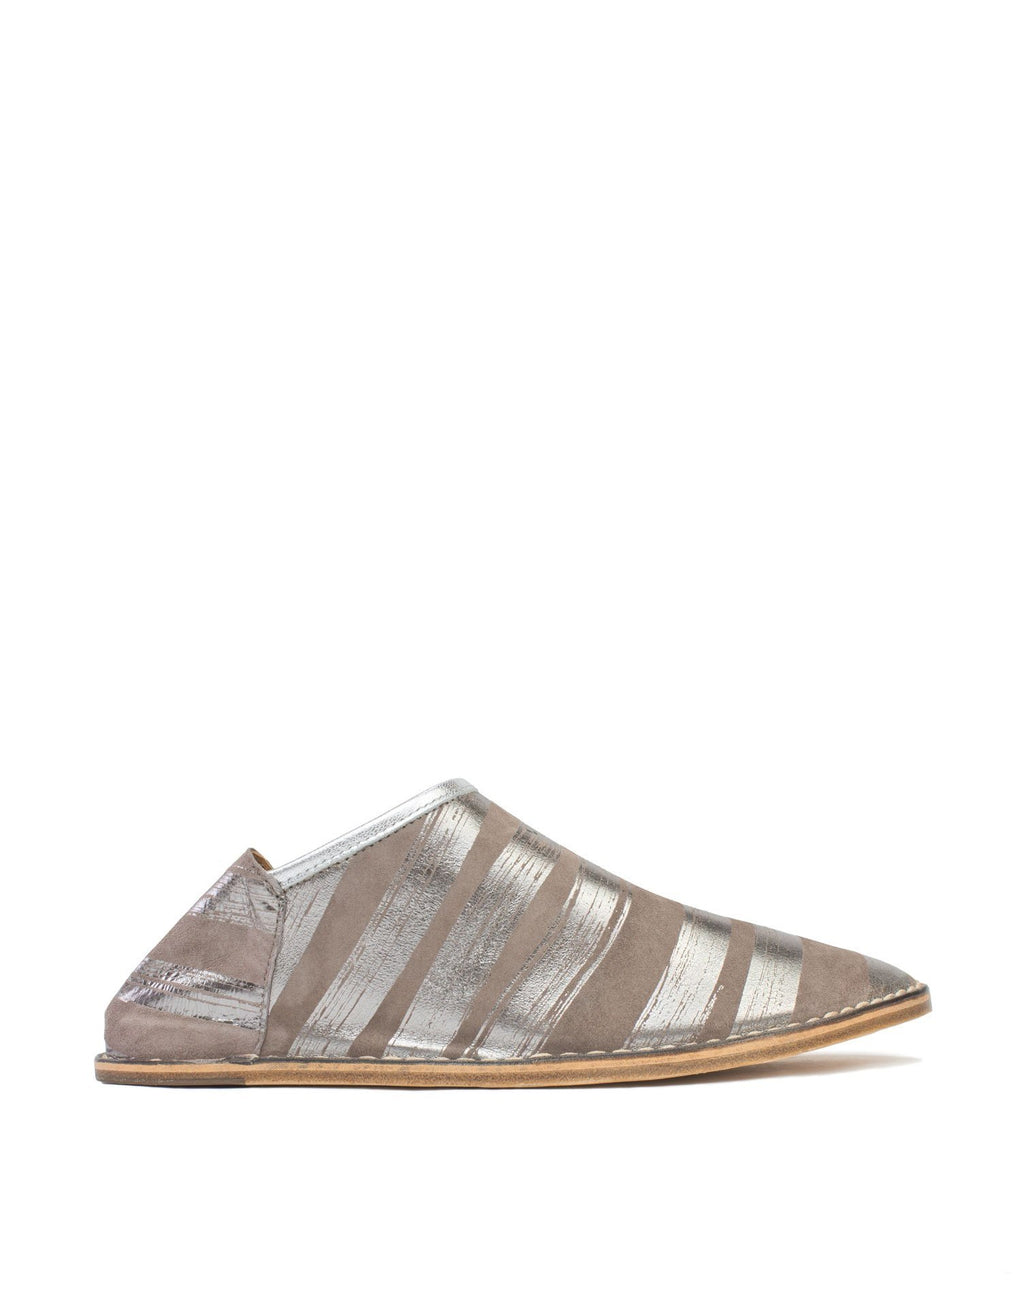 Neutral kid suede slip on slipper shoe with metallic anthracite brushstroke stripes by designer Georgina Goodman